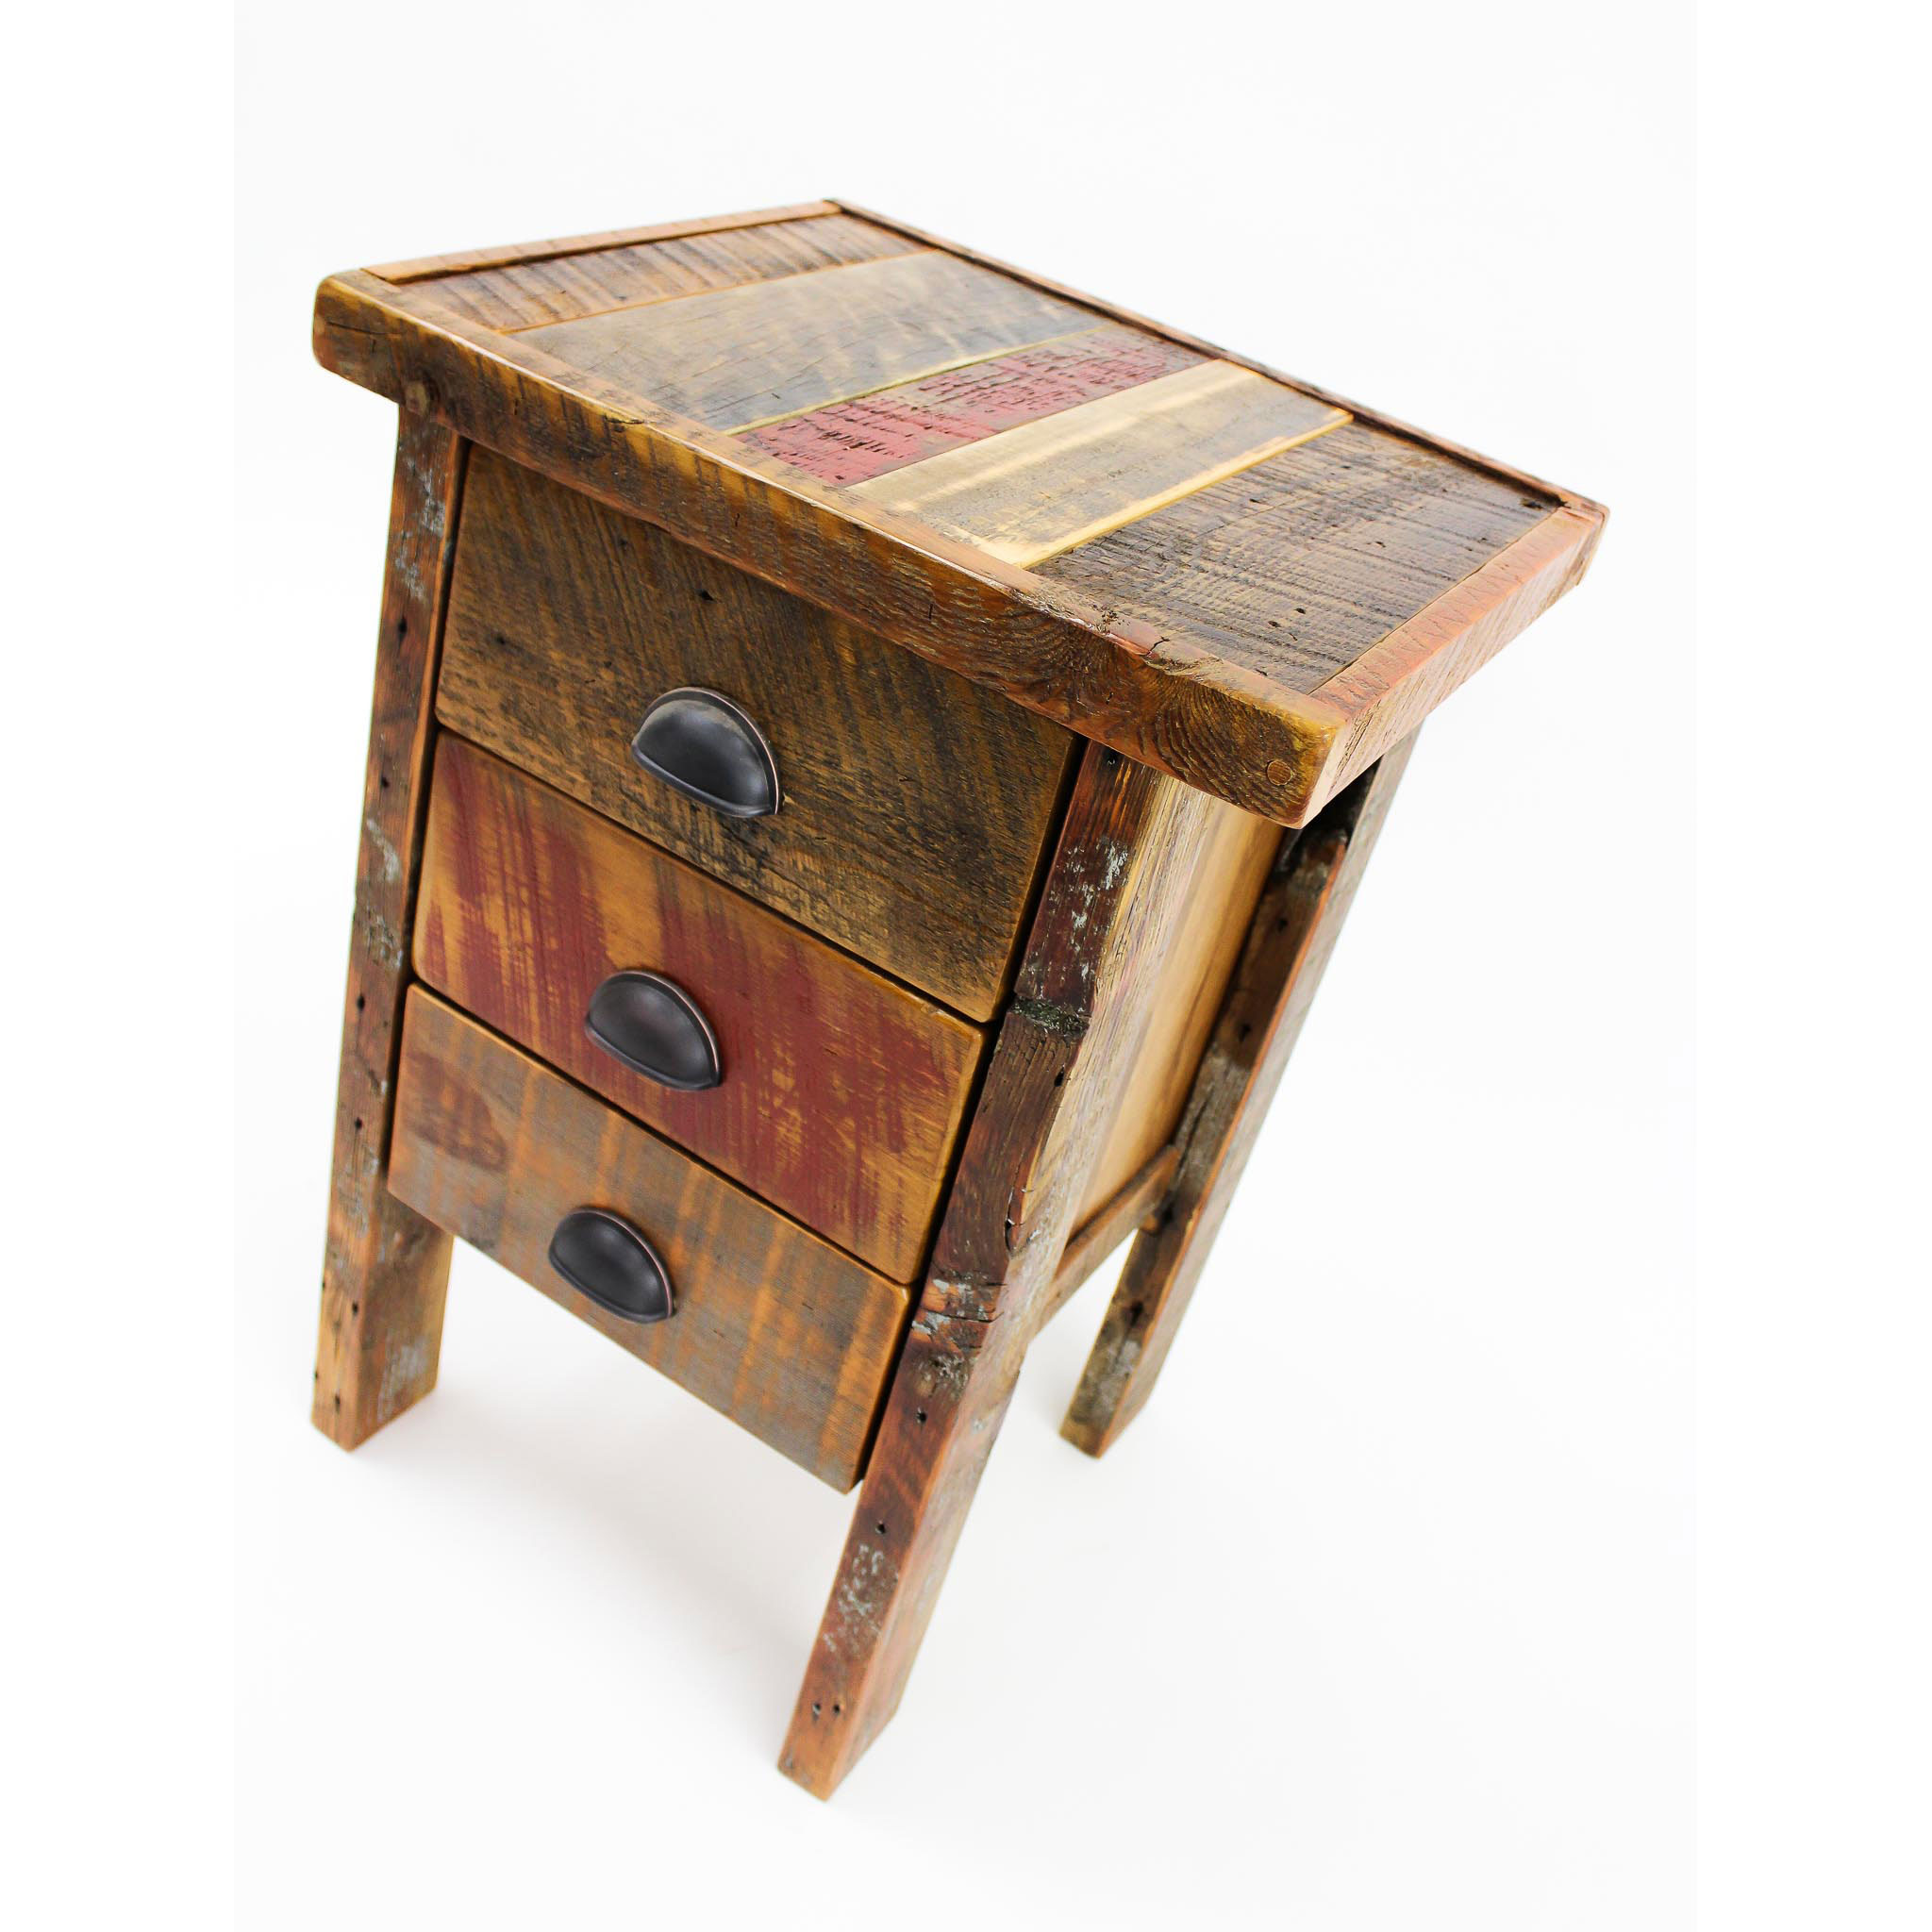 3 drawer night stand  Shown in reclaimed barnwood with an inlay top - Arizona color palette